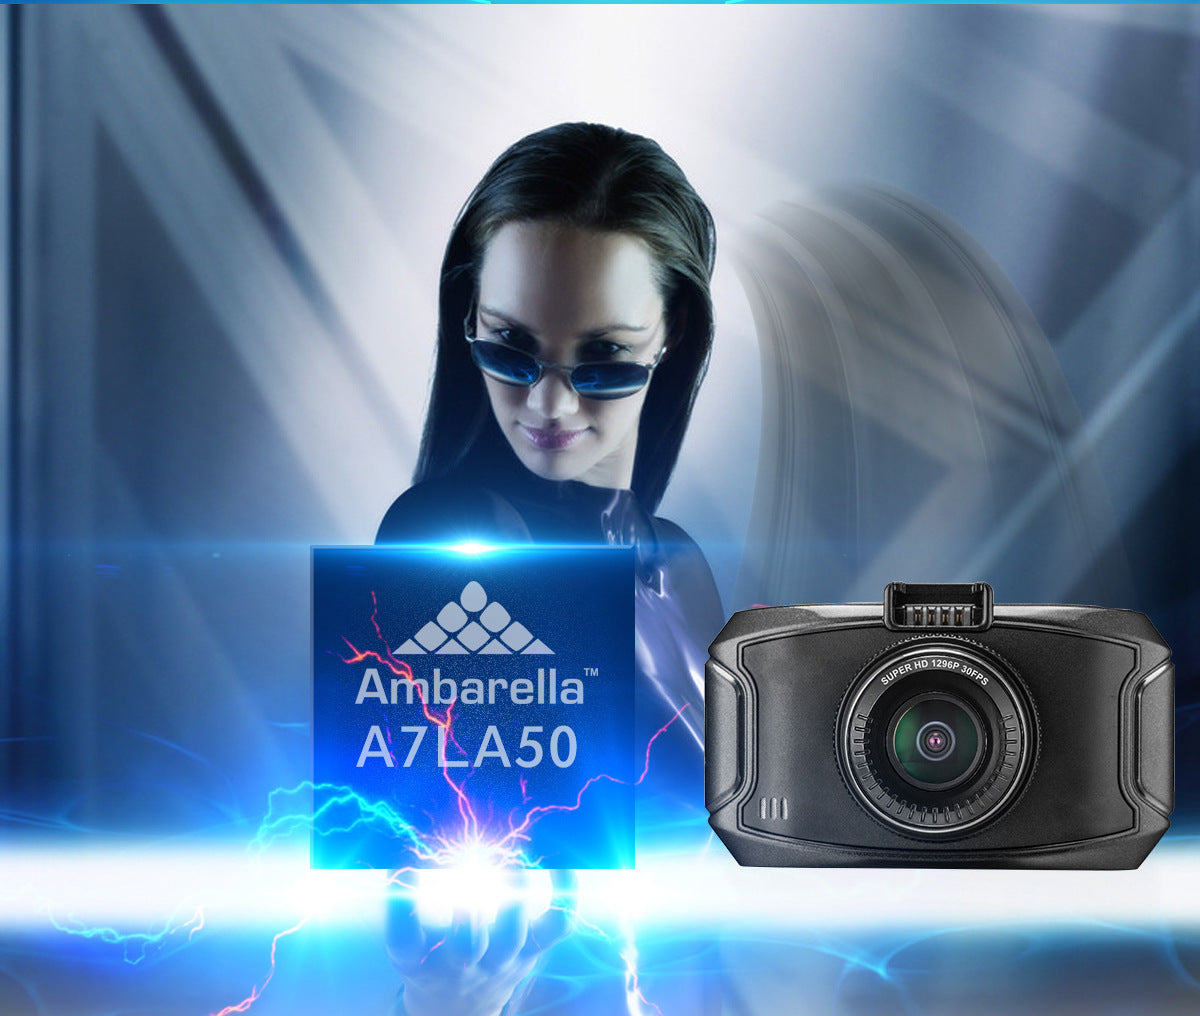 Ambarella A7 Dash Cam features and details